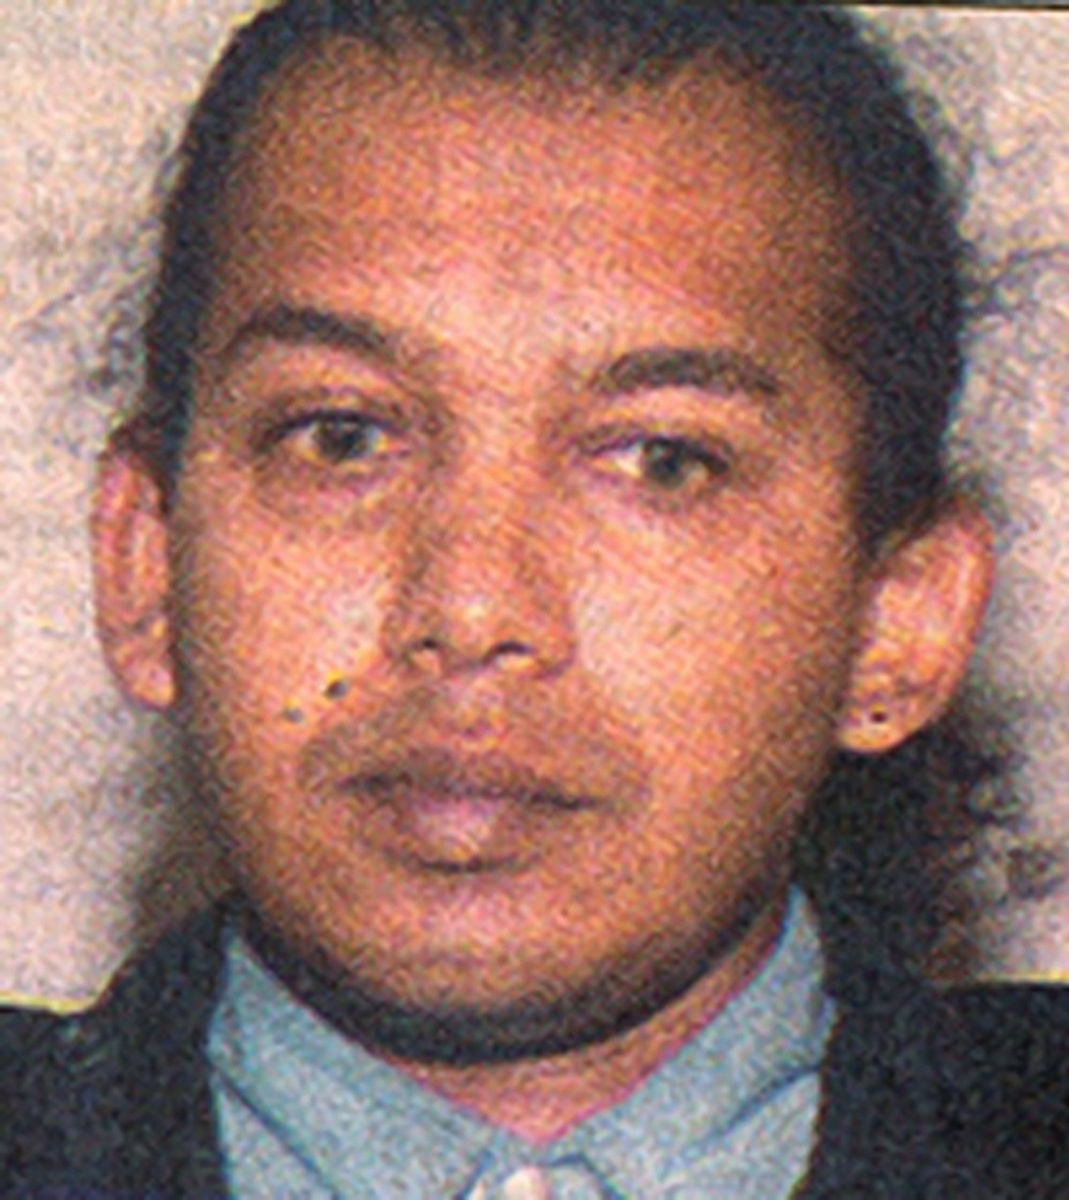 Convicted rapist Selva Subbiah. (Hout)